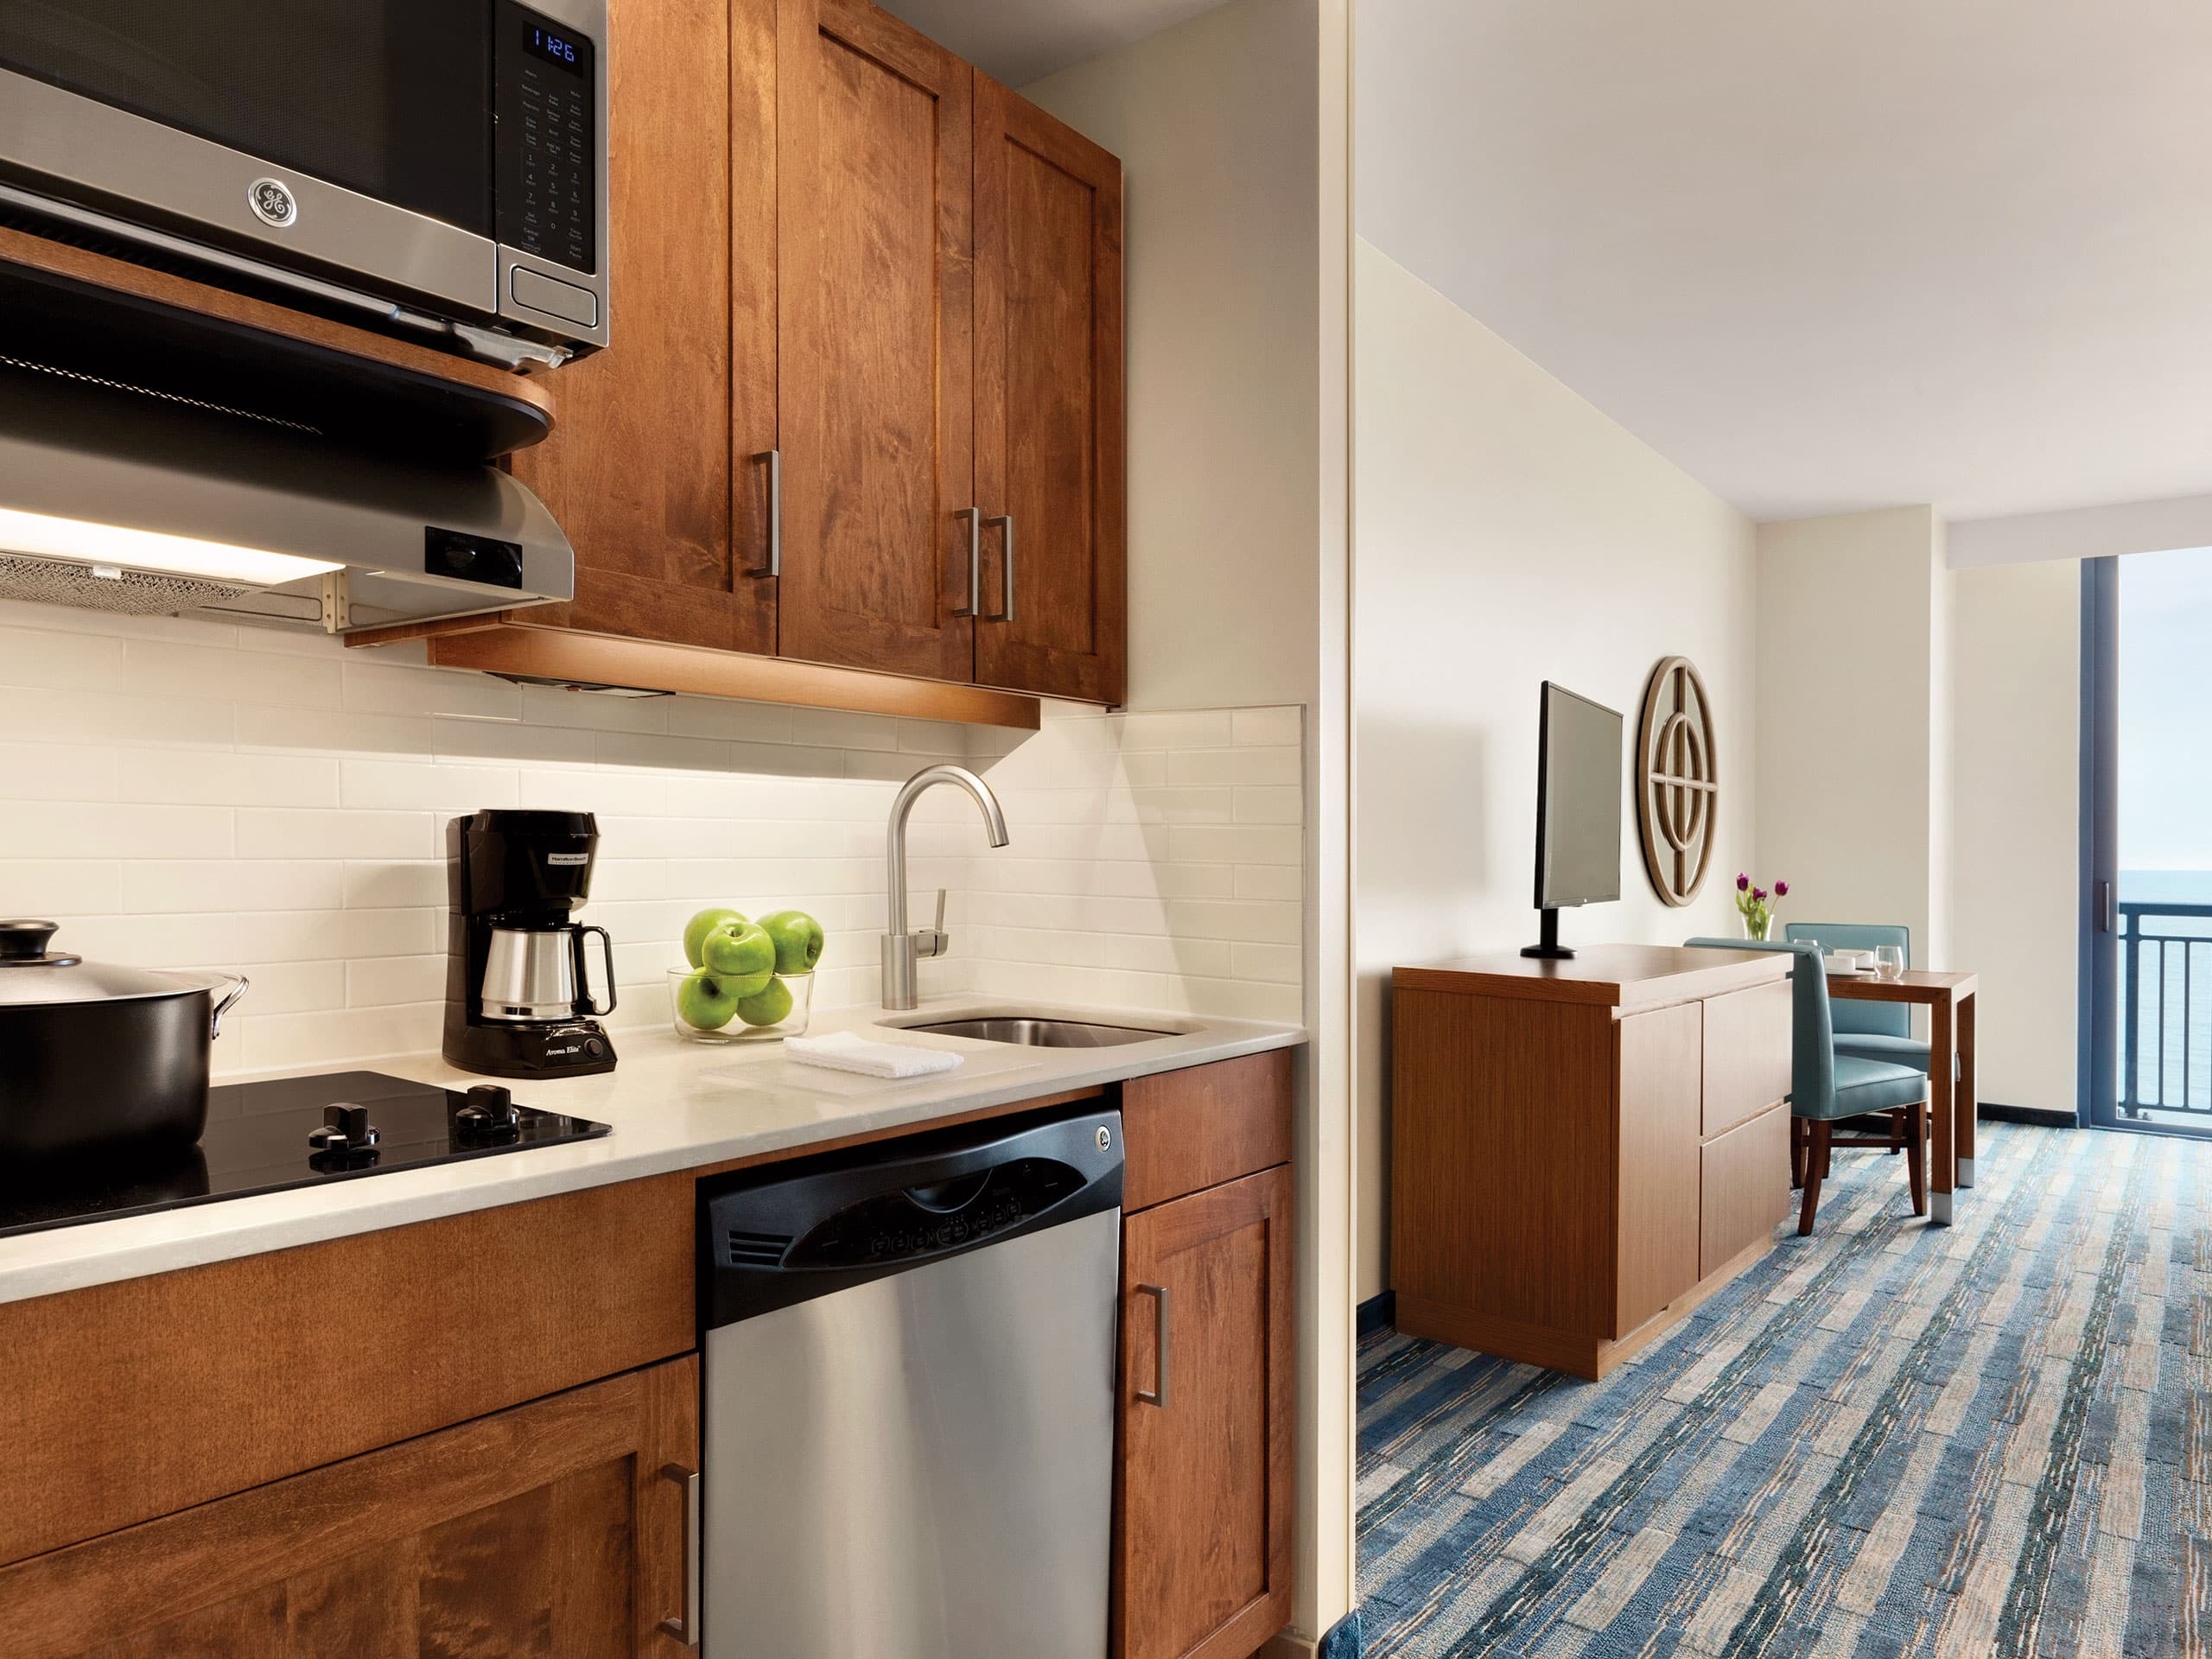 B&q Kitchen Design Jobs Extended Stay Hotels In Virginia Beach Hyatt House Virginia Beach